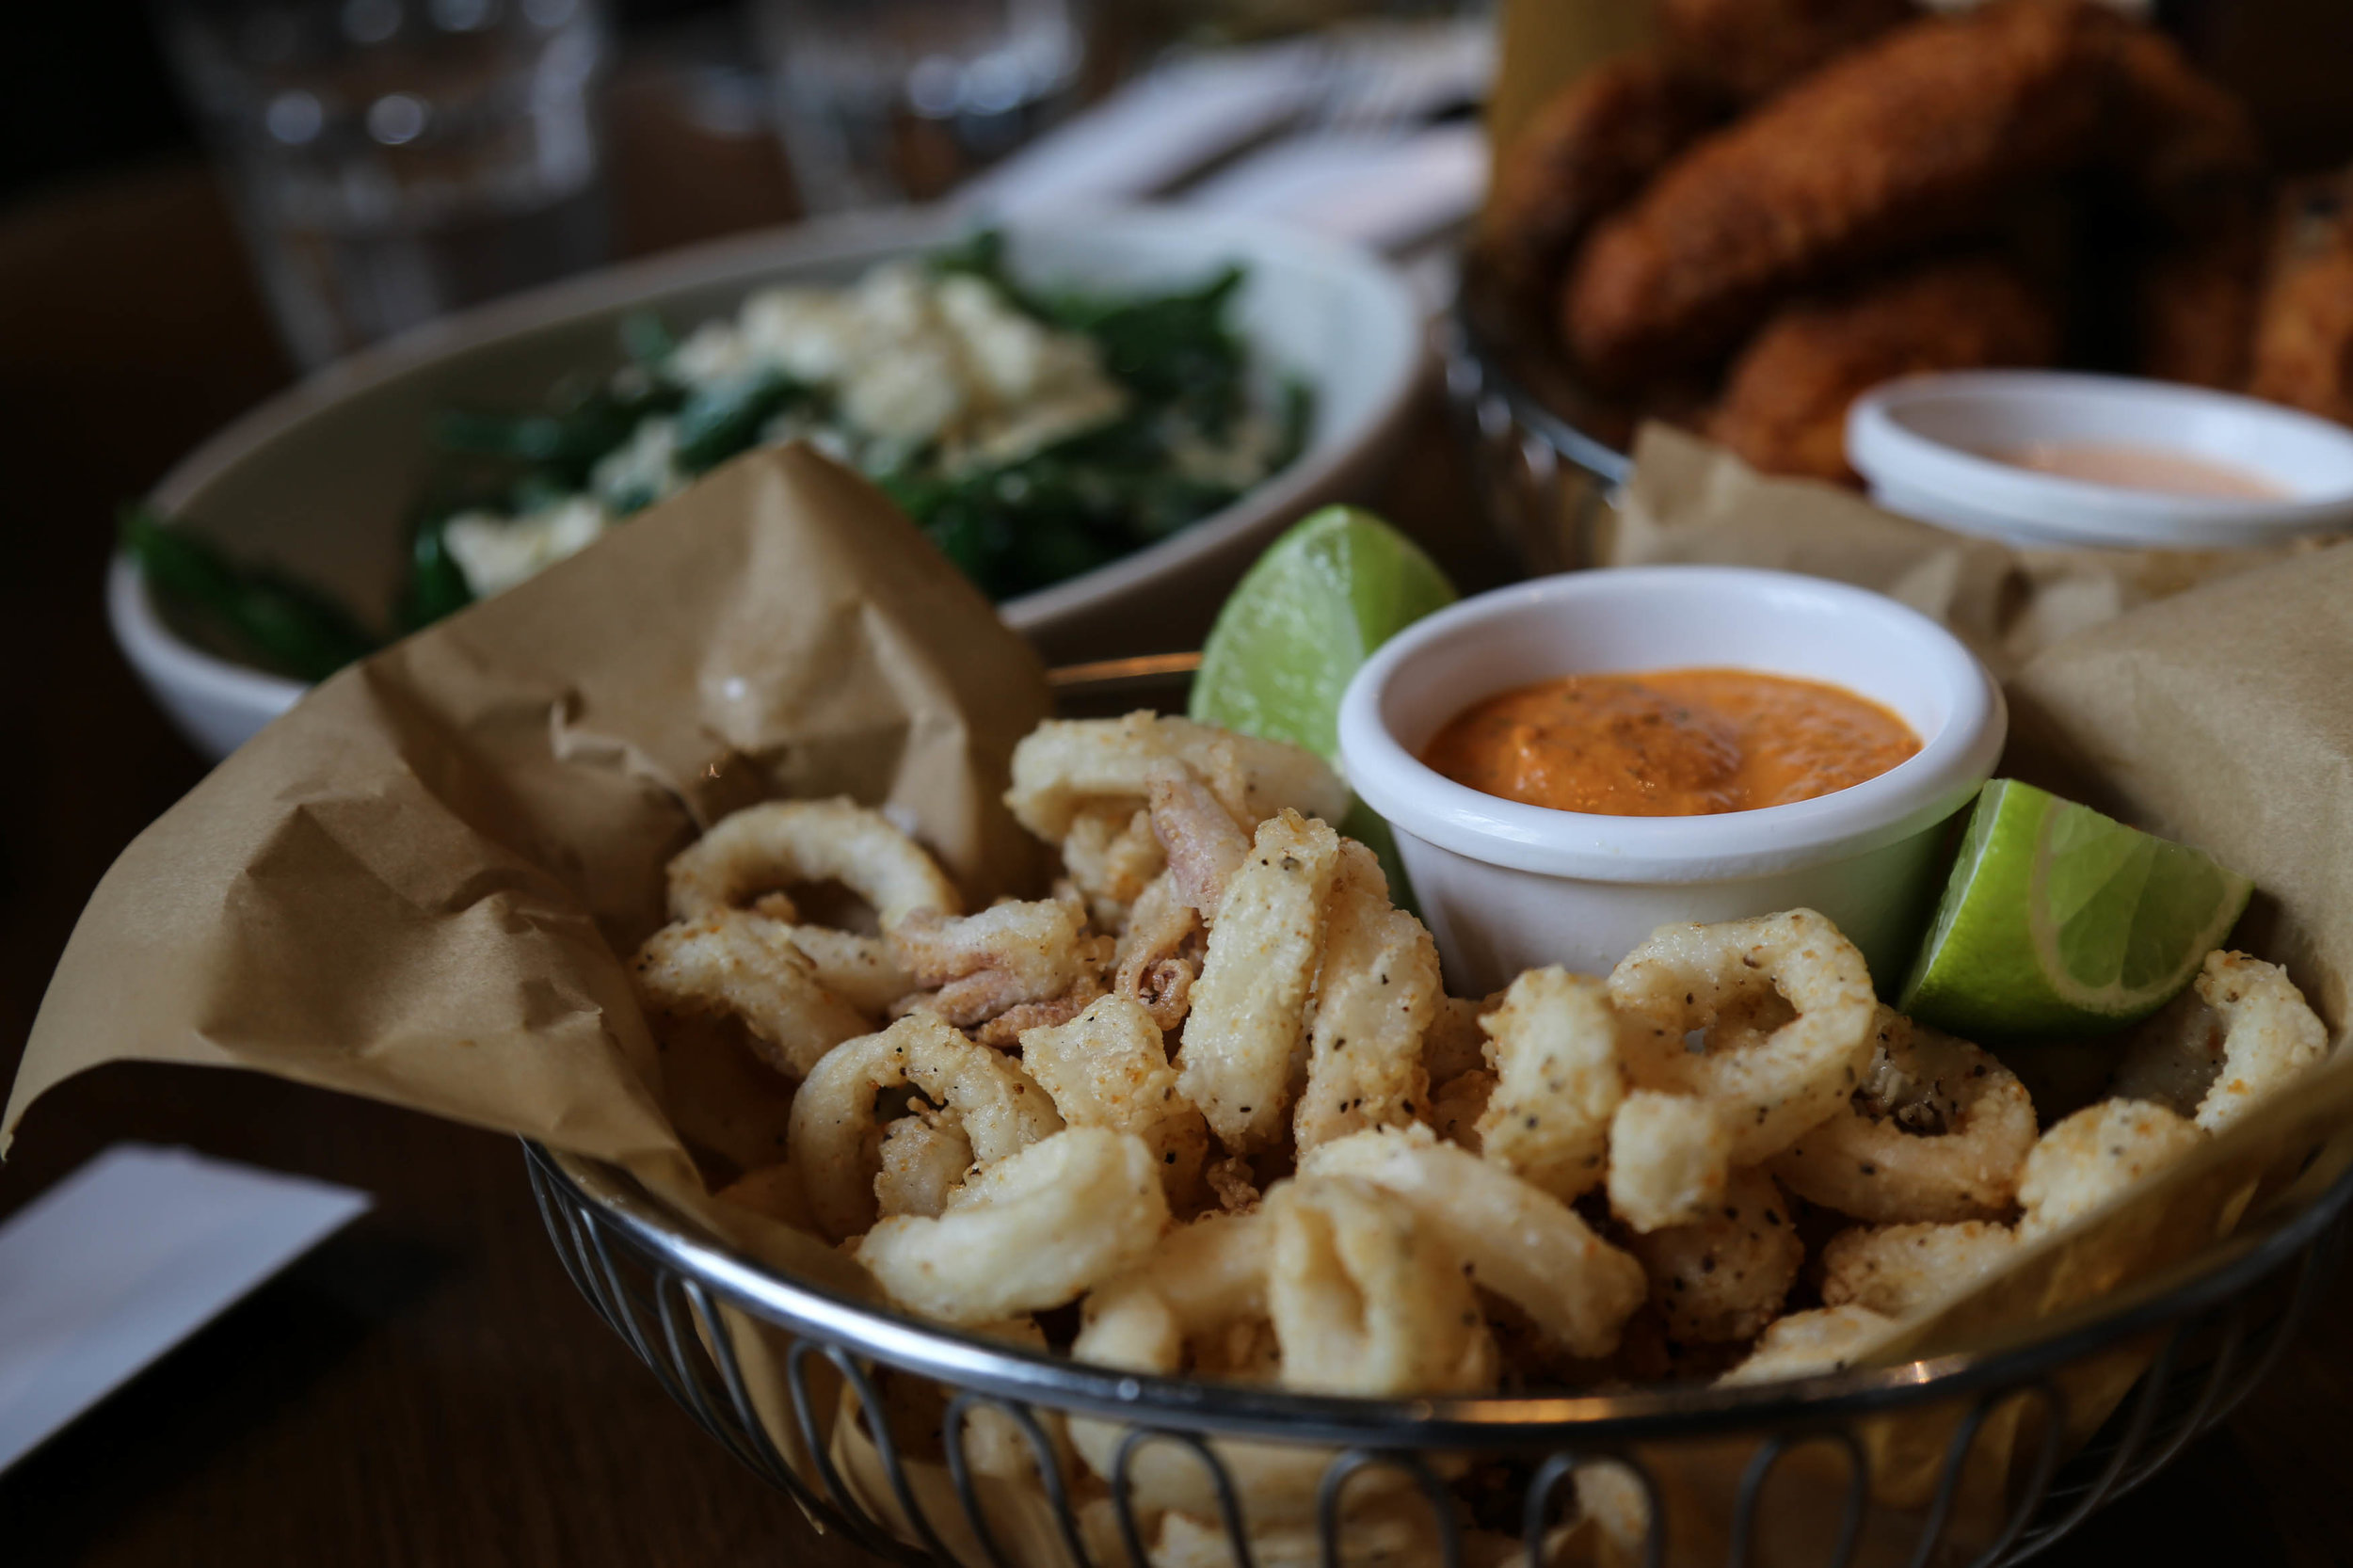 Salt & pepper calamari, lemon, romesco